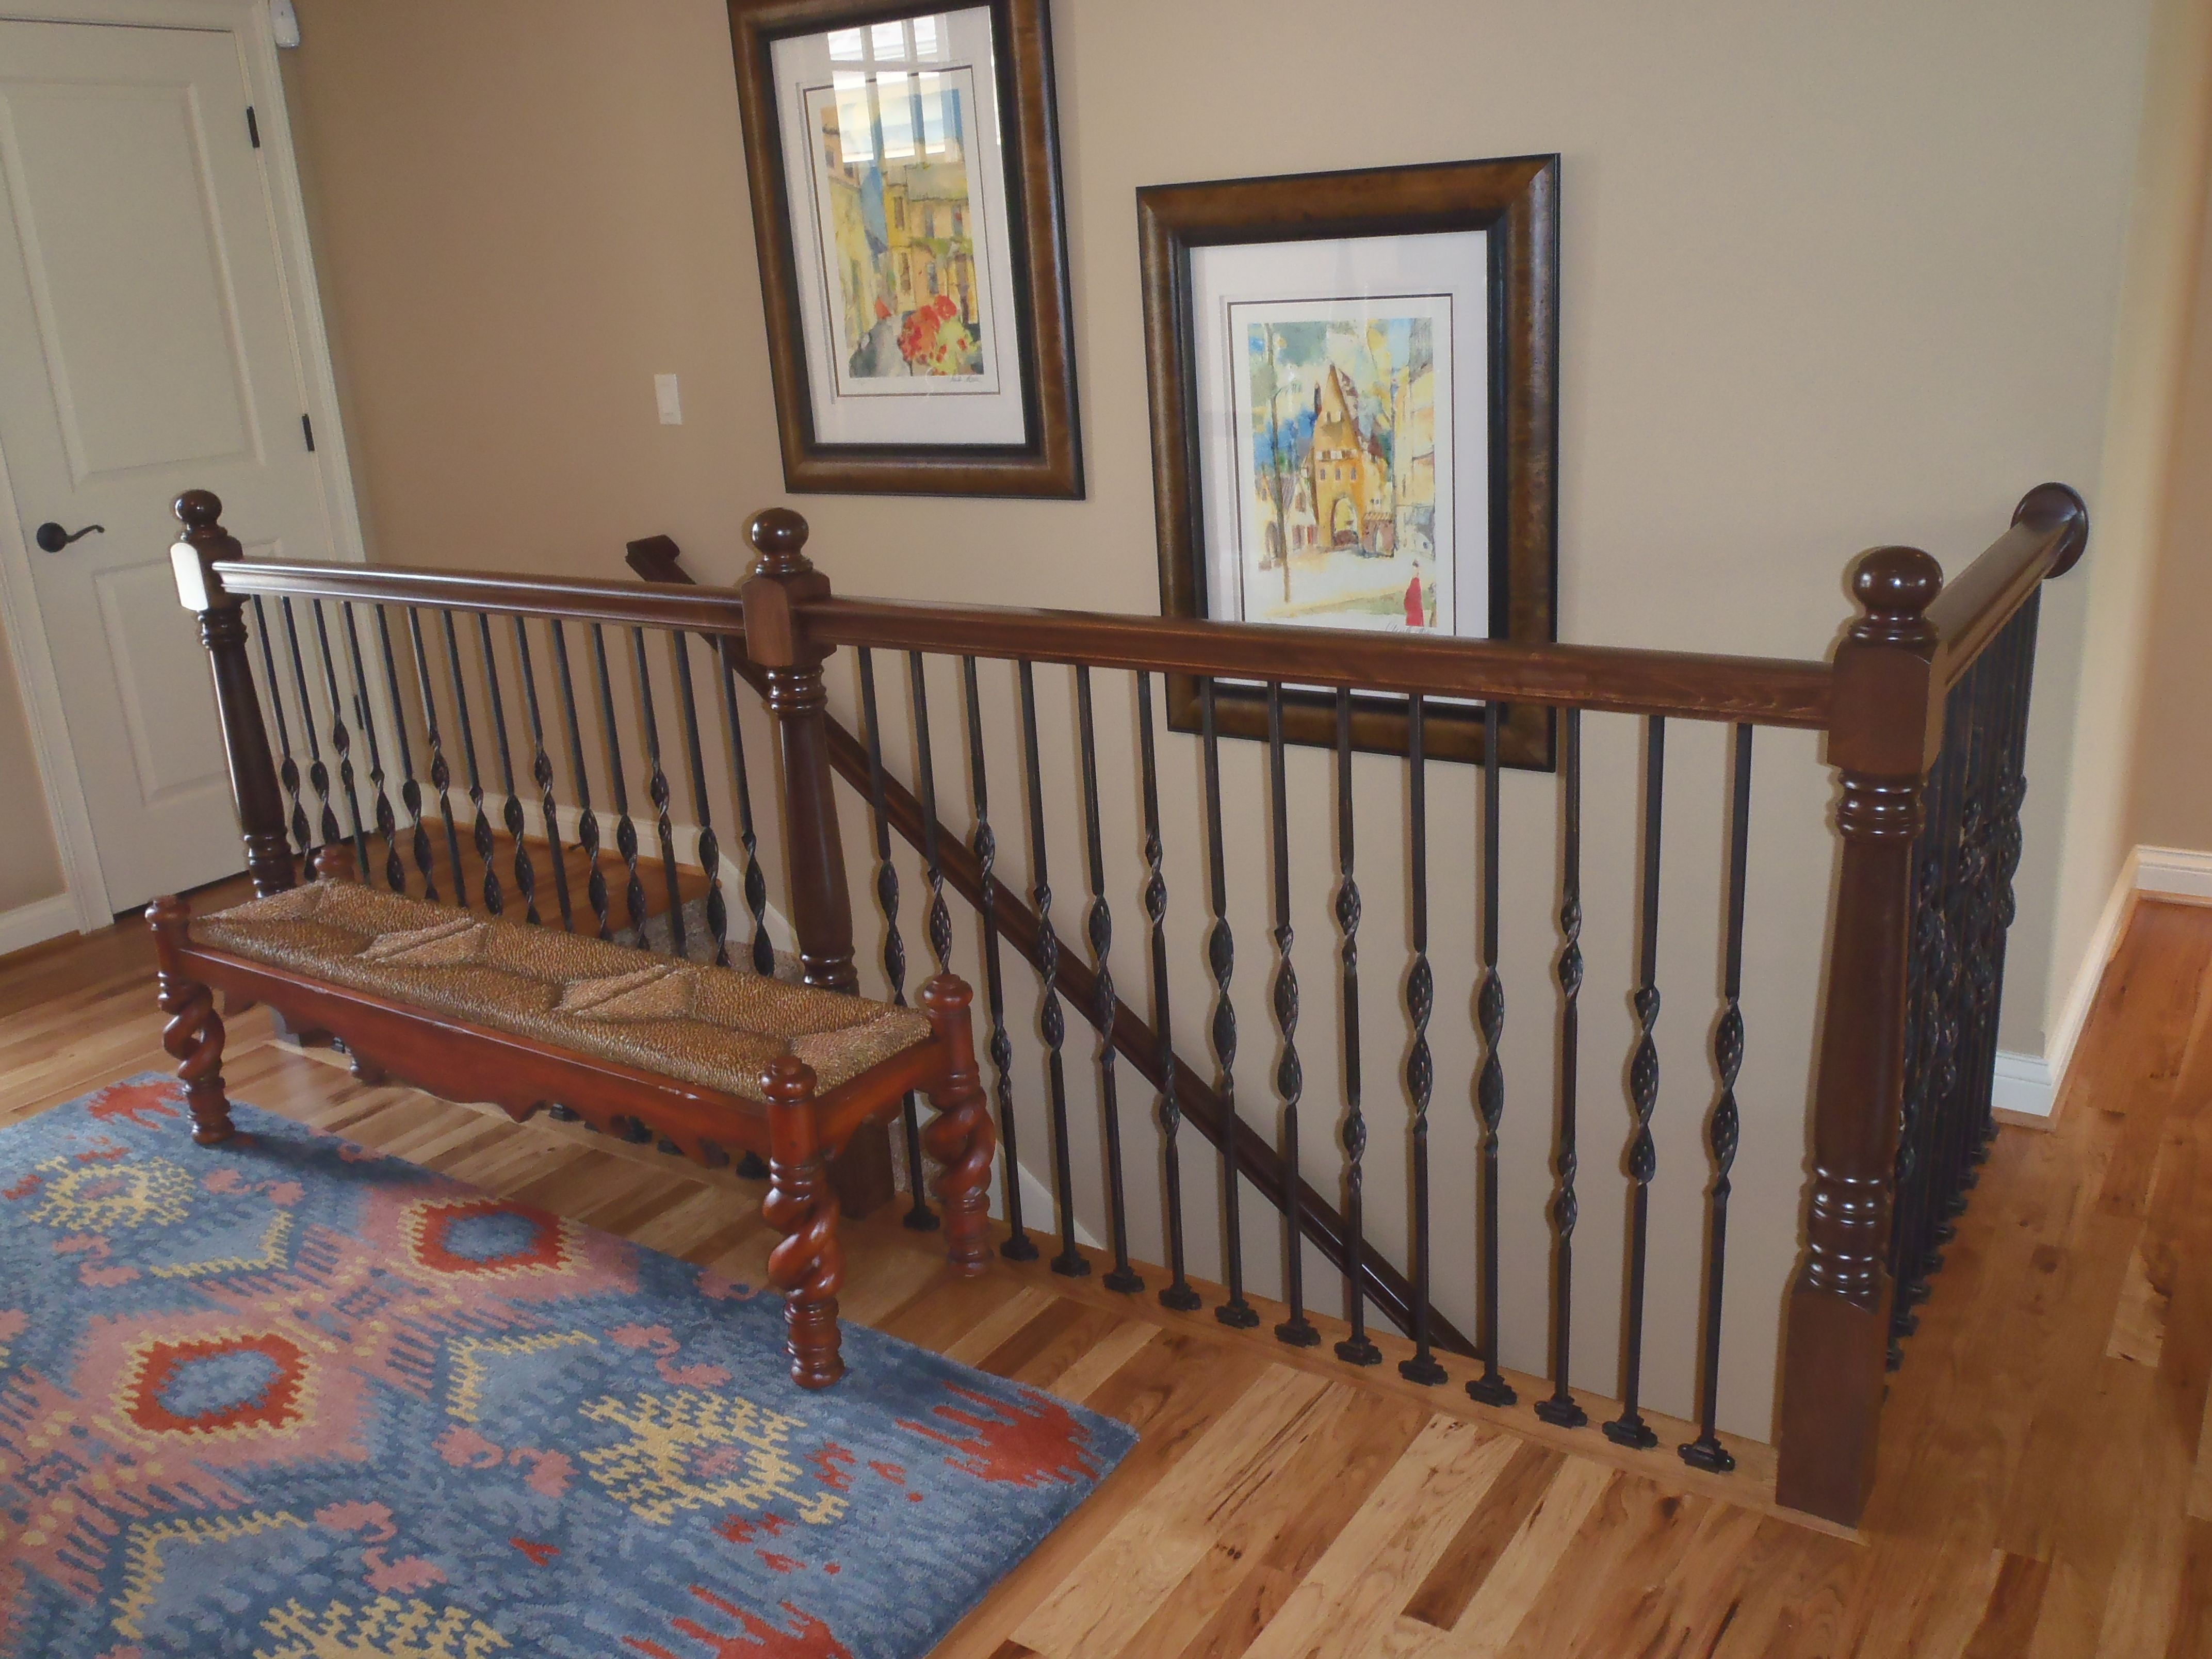 Different spindals on your hand railing will add more detail. For more information visit www.carstensenhomes.com